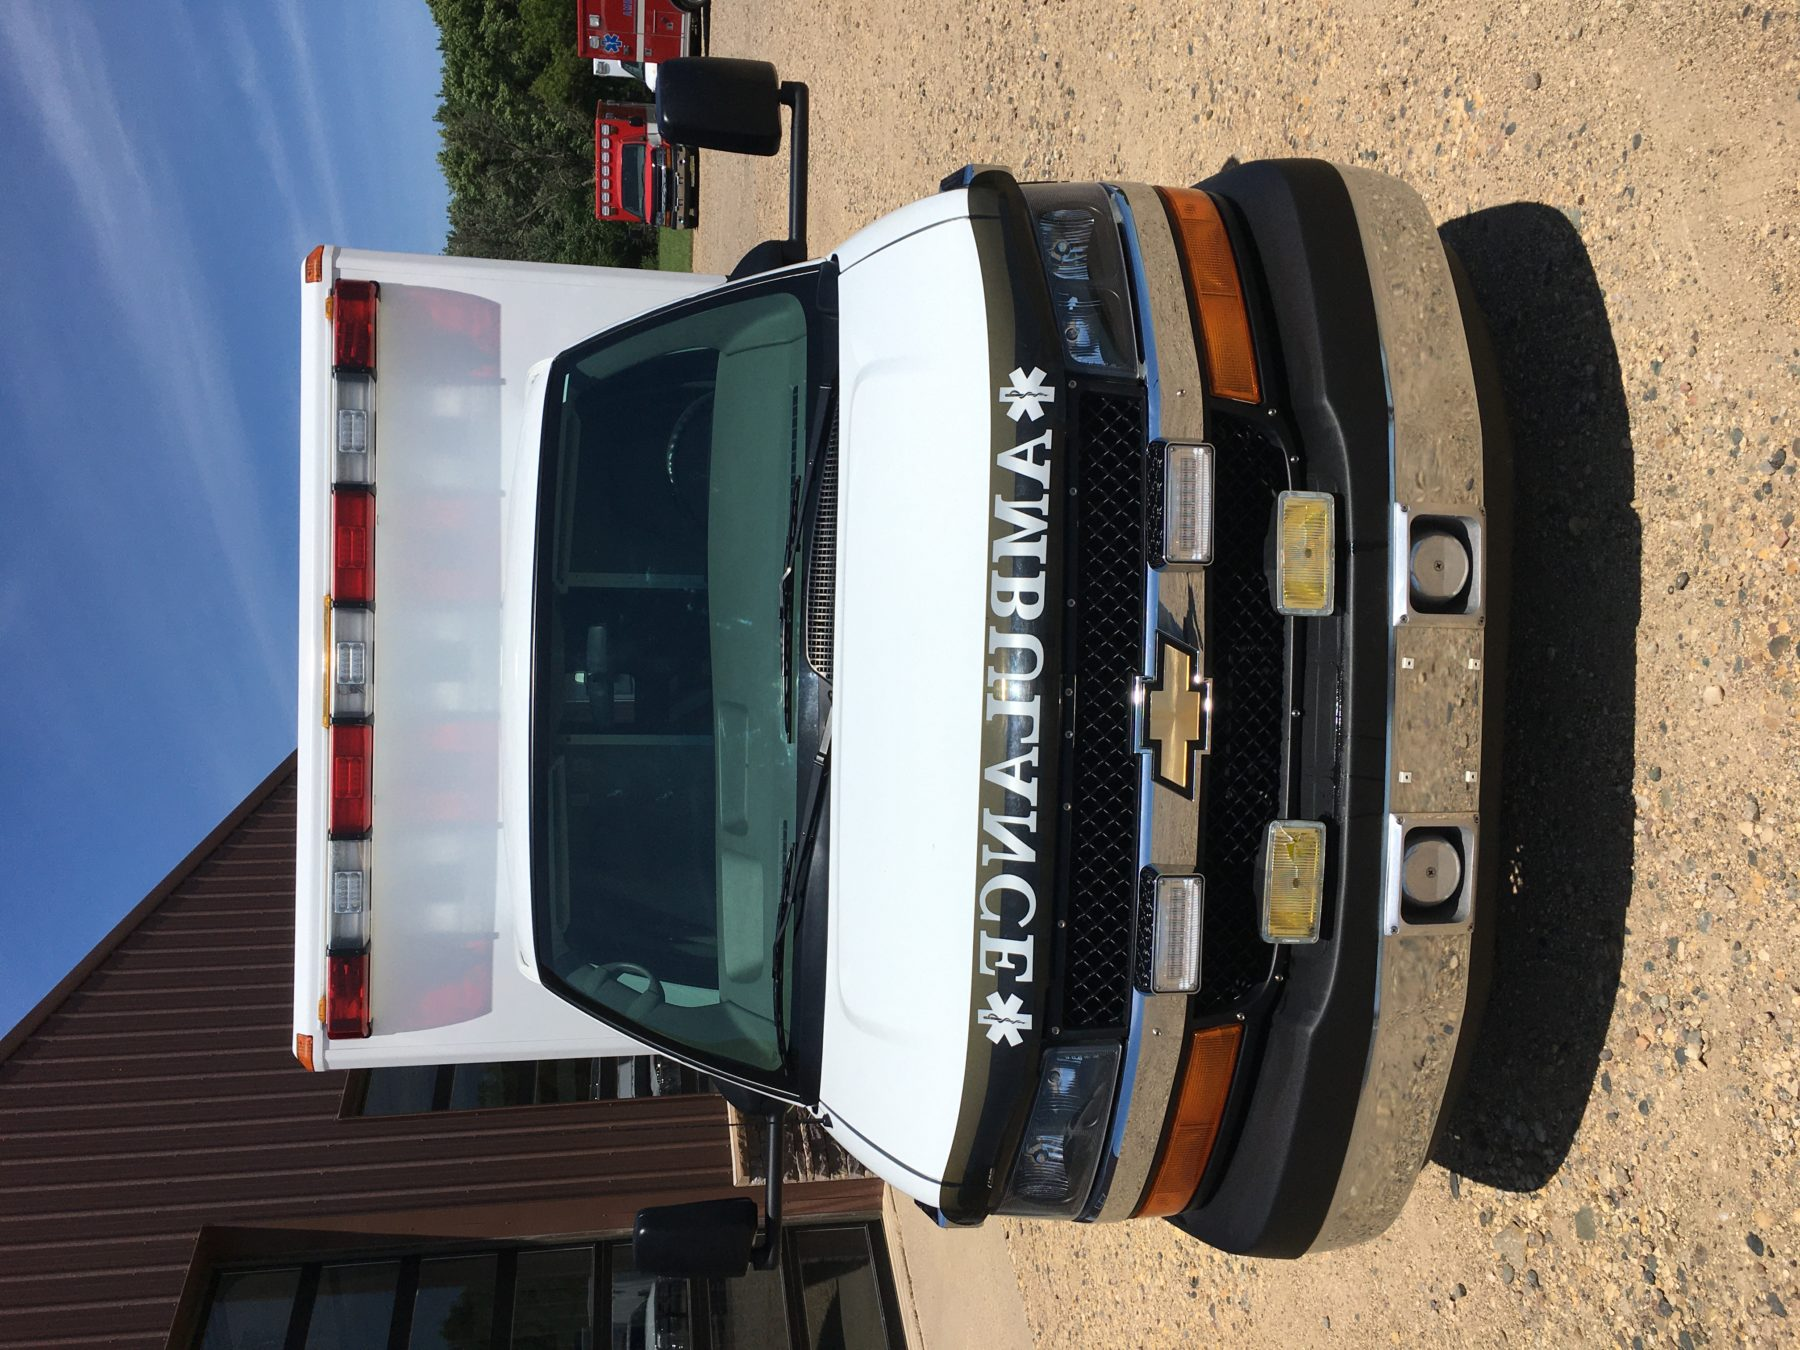 2007 Chevrolet G3500 Type 3 Ambulance For Sale – Picture 6